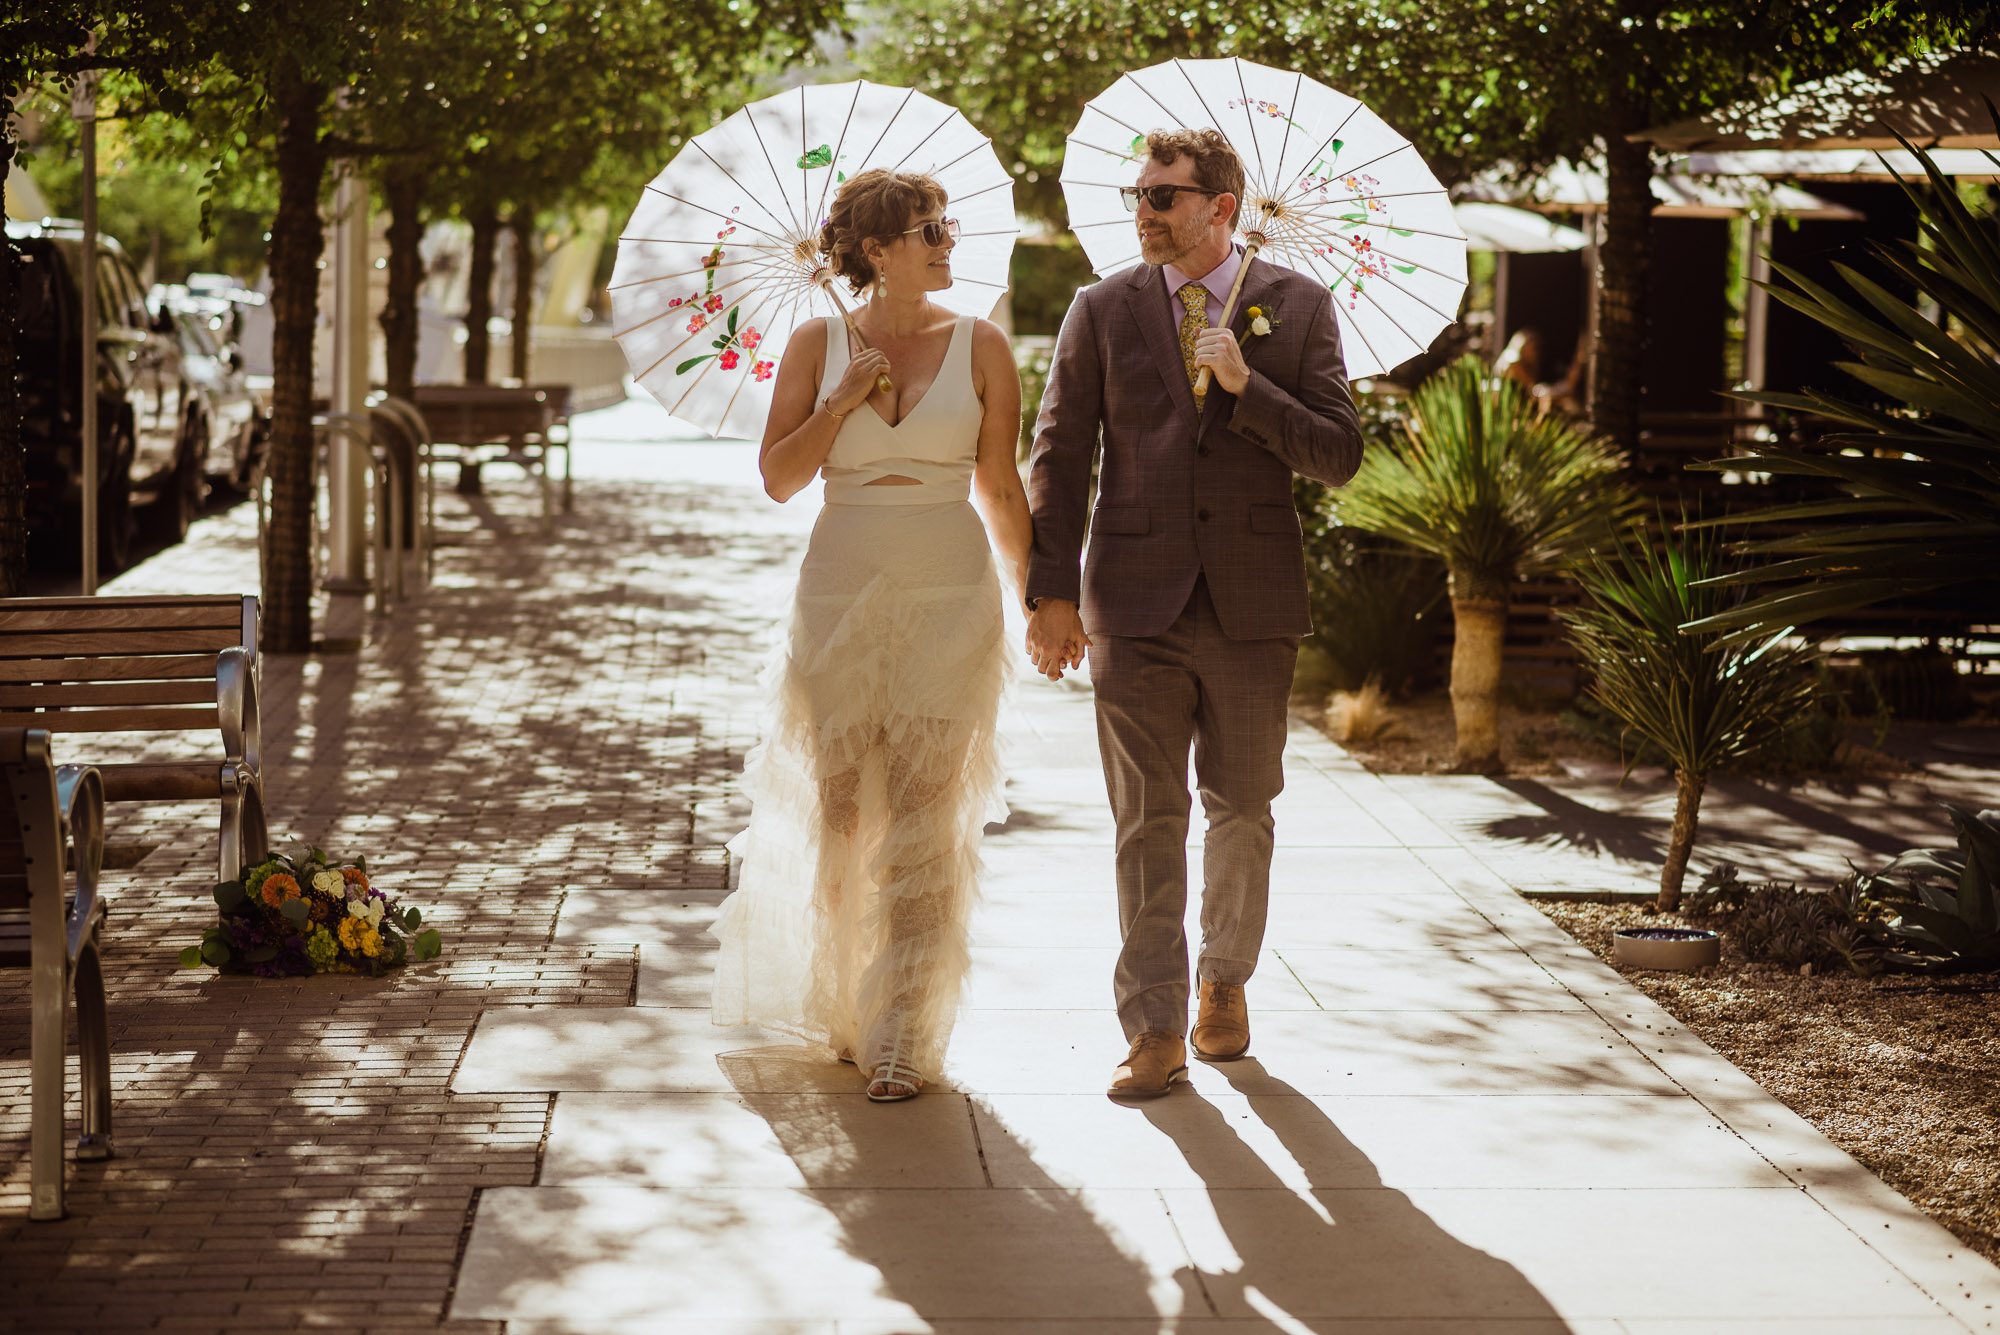 austin elopement and microwedding photographer